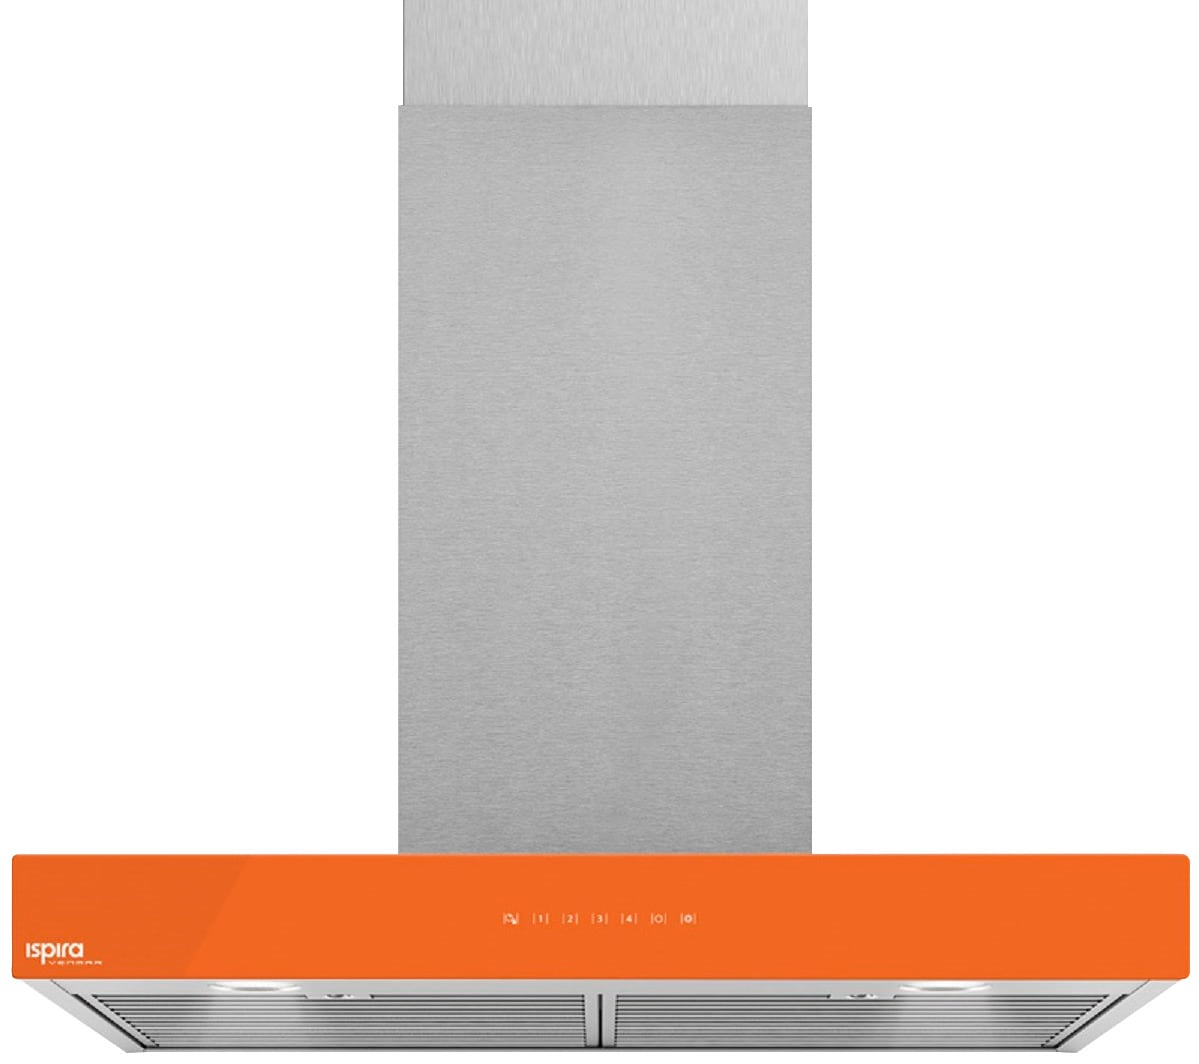 "Venmar Ispira 36"" Chimney Range Hood – Orange"